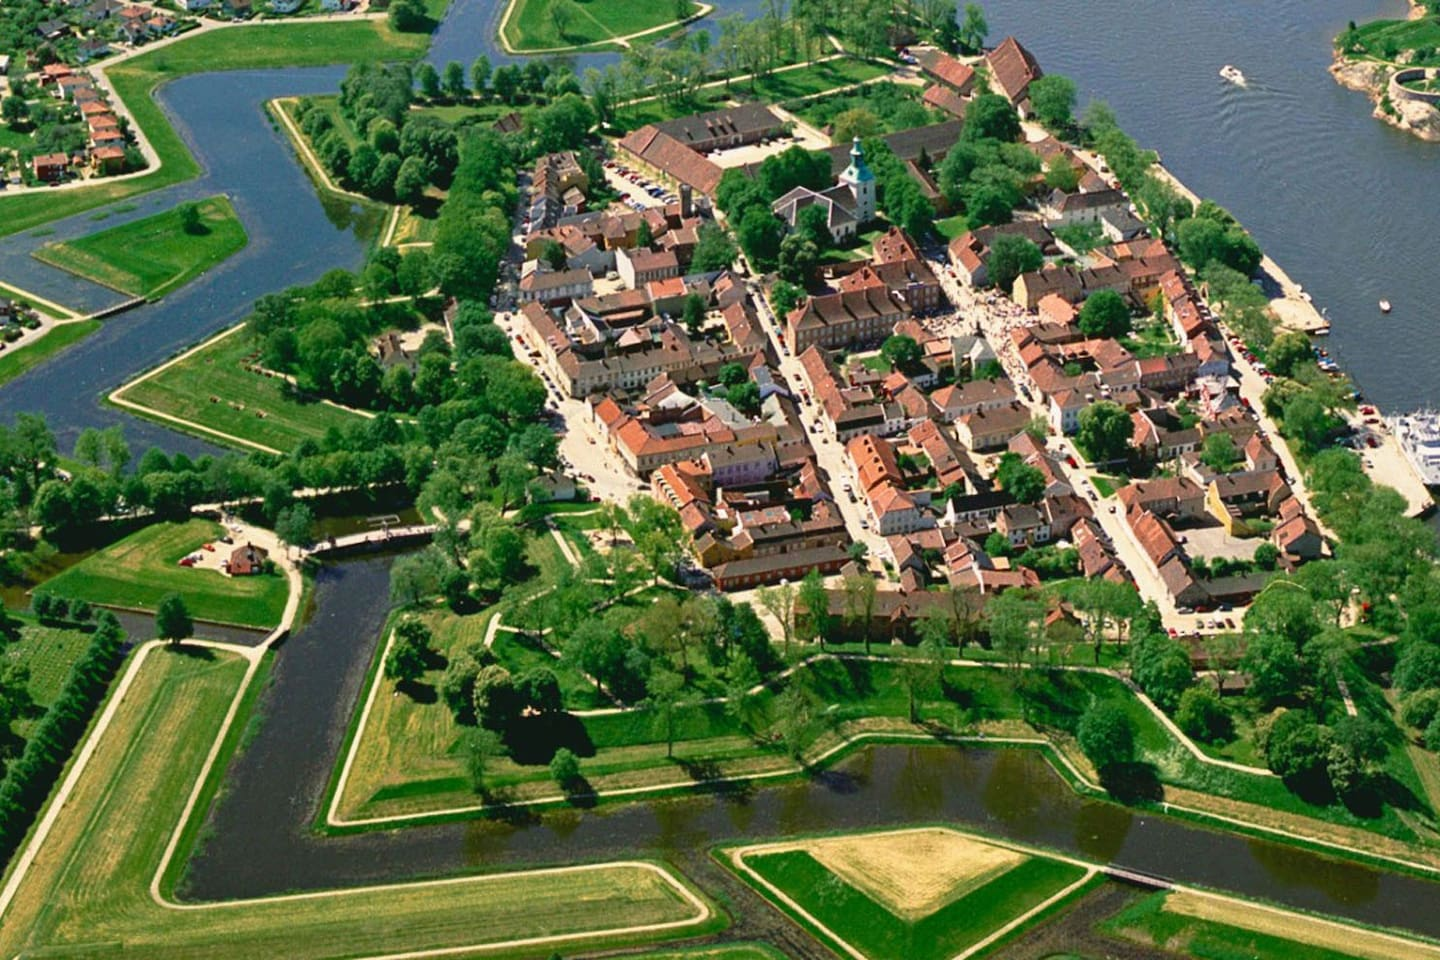 Ariel shot of the Old Town in Fredrikstad.